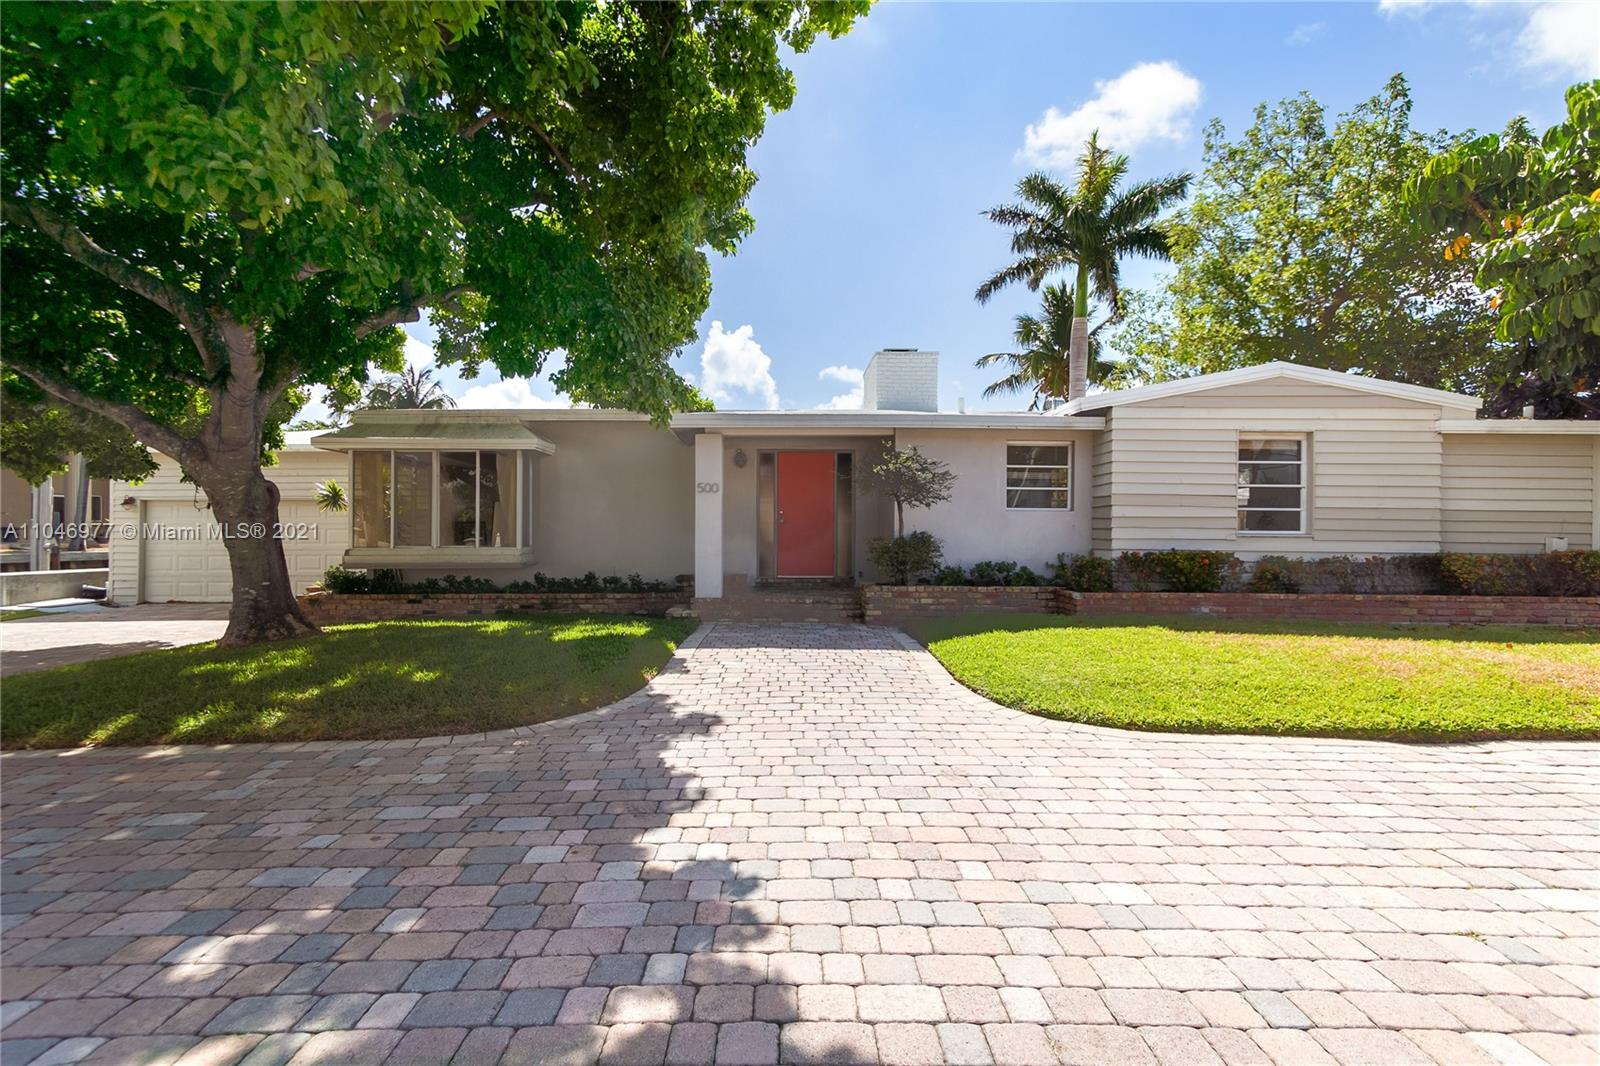 *** Price is WEEKLY!!!. Please inquire about longer or shorter stays and rates.*** This amazing home is steps to the beach and has no fixed bridges to the ocean. The home features a large water frontage and private pool. Plenty of sun with limited trees around the pool, but plenty of area to stay cool.